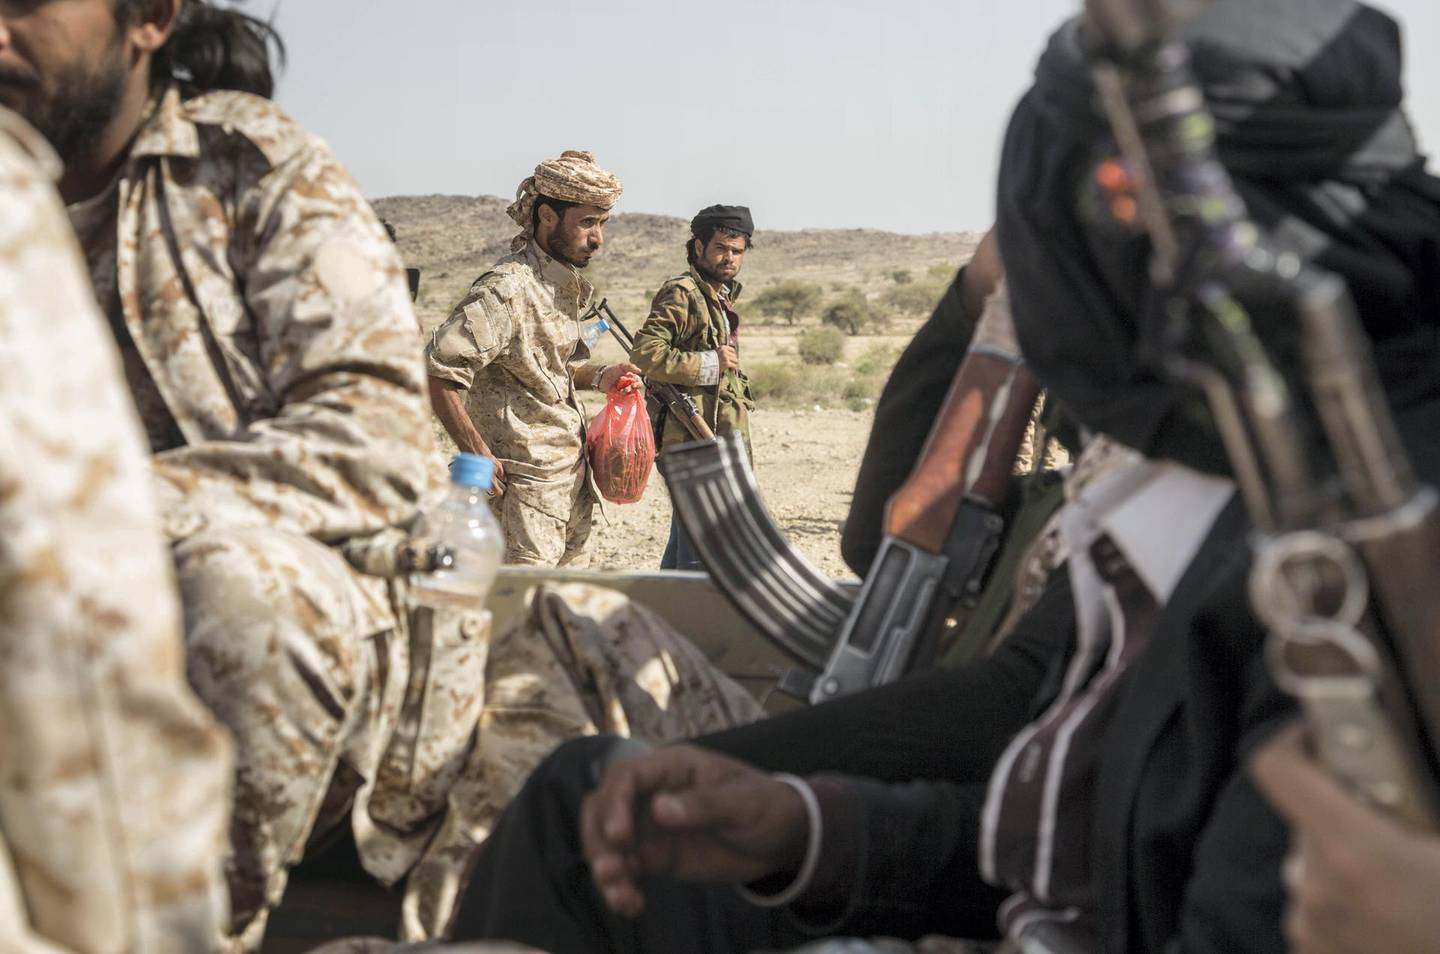 Ahmed Omar ( L) with other members of Yemeni resistance forces of Abu Jabr brigade that have been defending their areas against Houthi advances in Zi Naem town of Al-Bayda governorate,  May 8, 2018.  Photo/ Asmaa Waguih